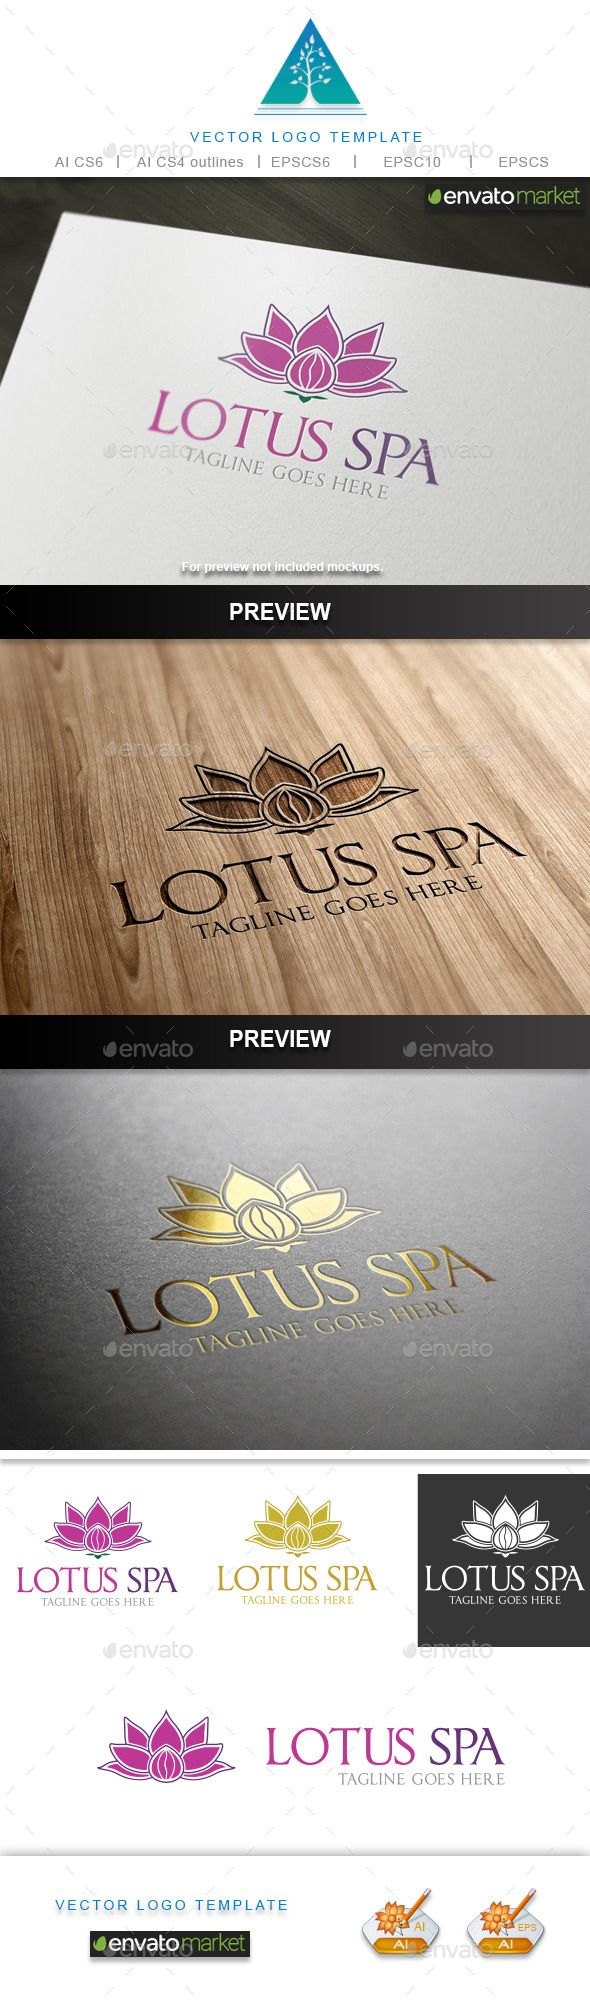 25 best Massage logo images on Pinterest | Massage logo, Logos and ...